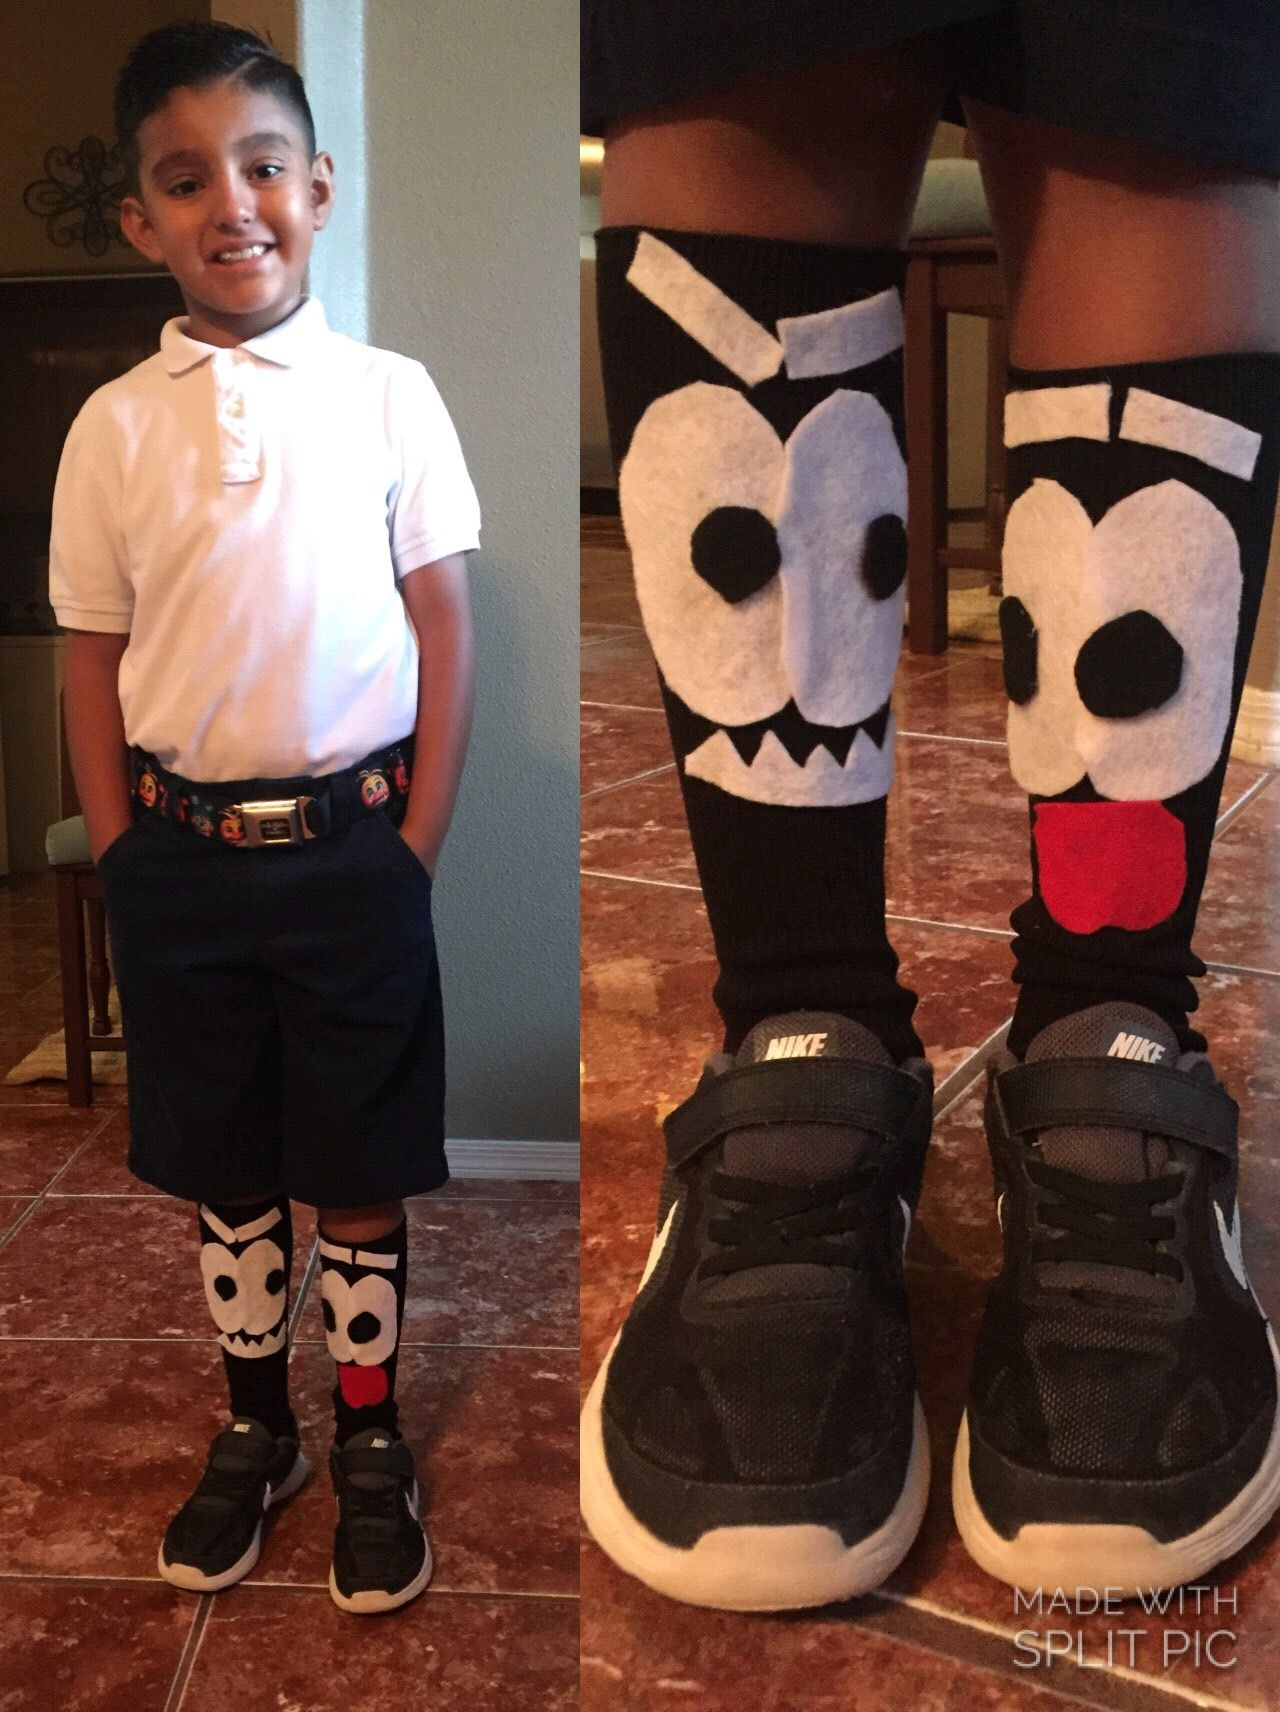 Crazy Sock Day for 3rd graders! Easy DIY! #crazysockdayideas